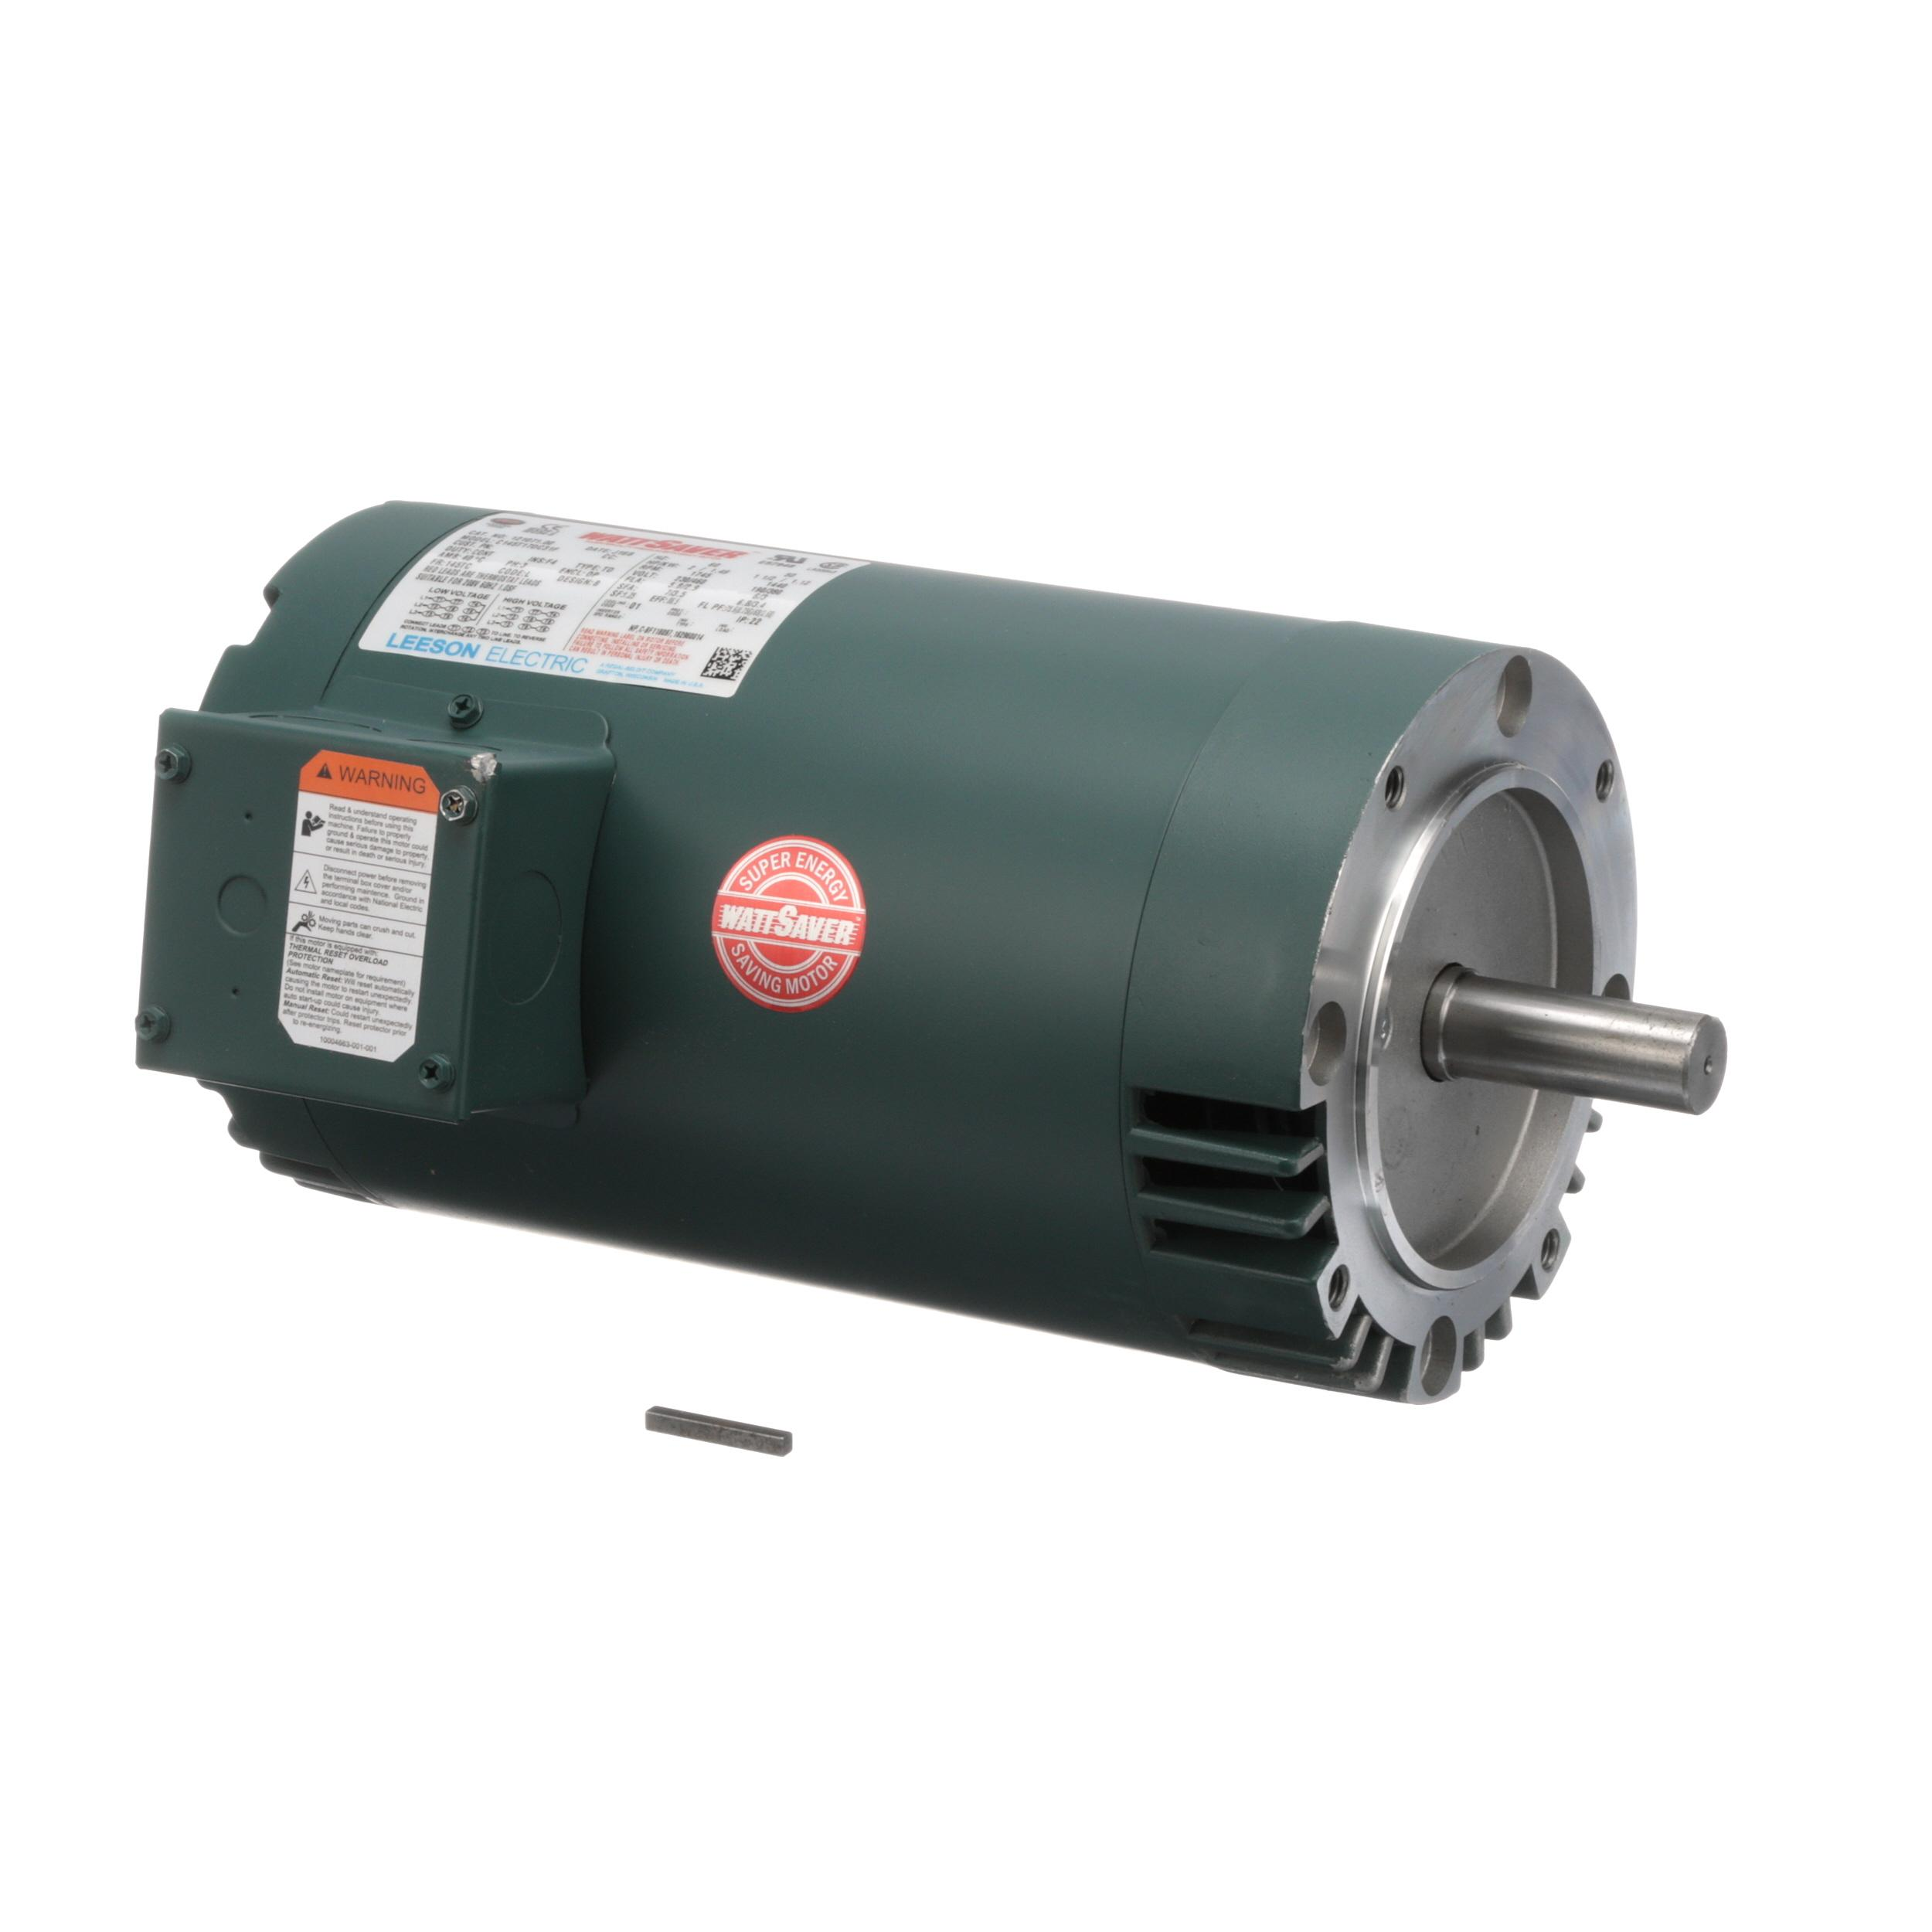 Blakeslee Pump Motor Part 8337